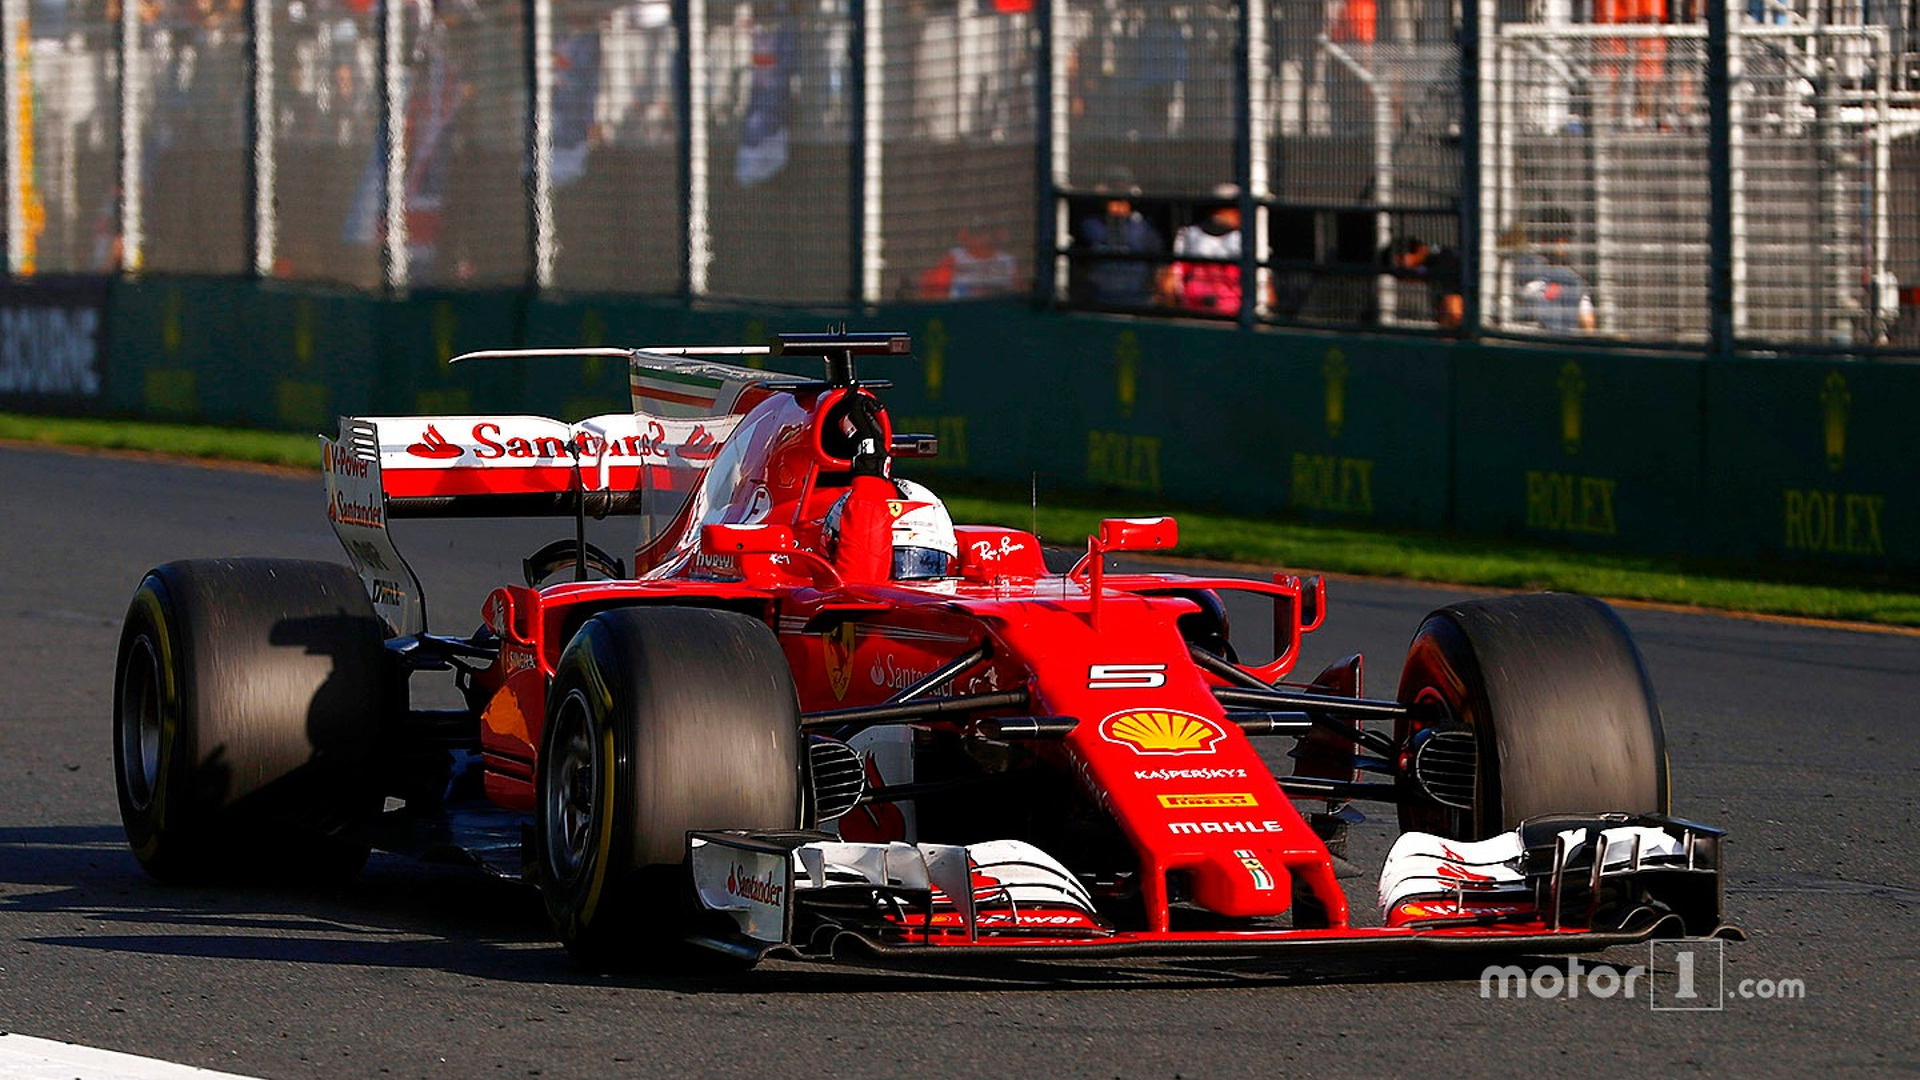 formule 1 vettel fait briller ferrari melbourne. Black Bedroom Furniture Sets. Home Design Ideas